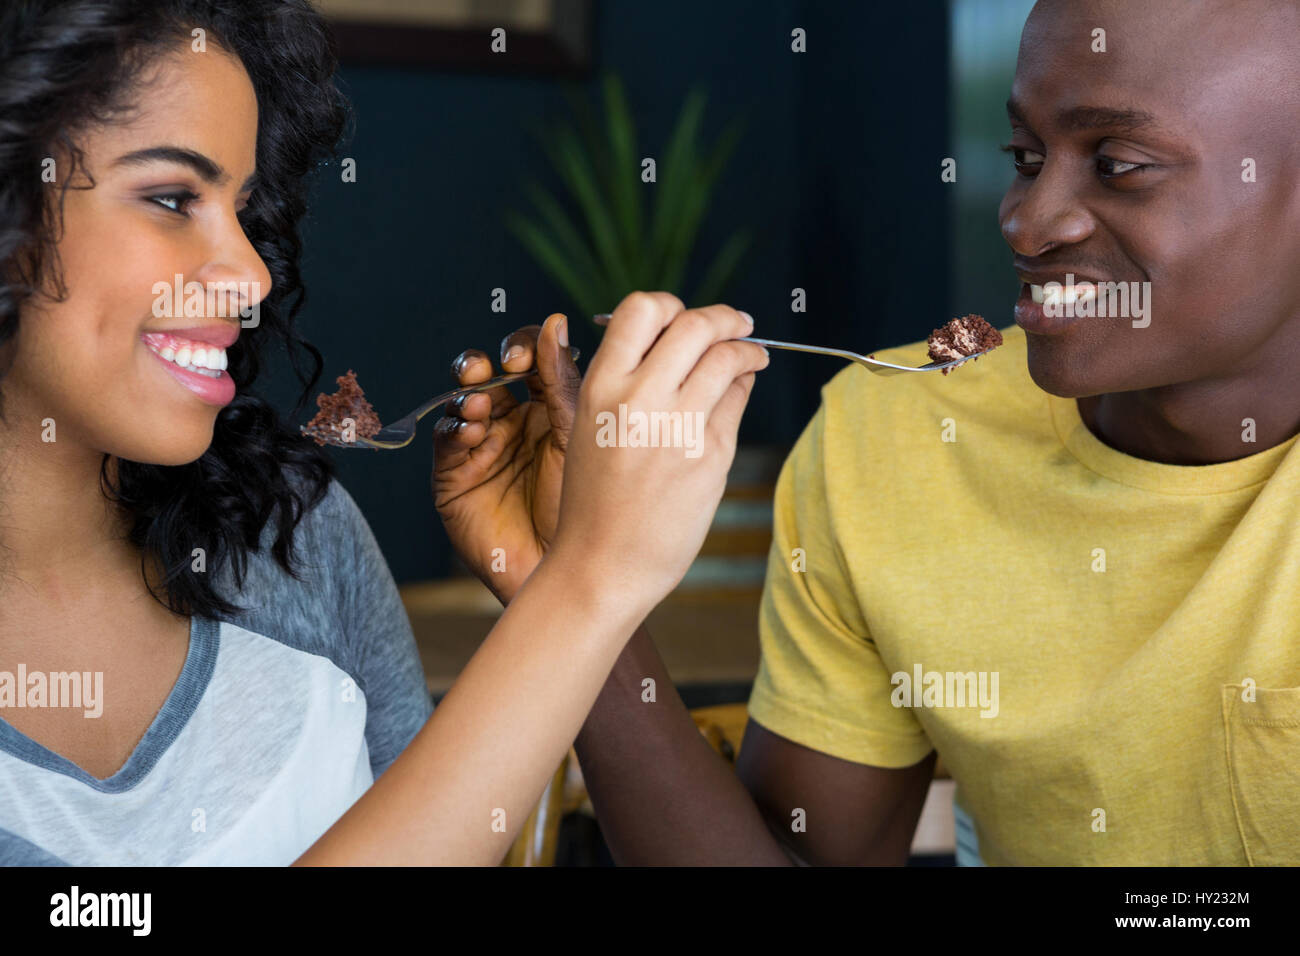 Smiling young couple feeding each other dessert in coffee shop - Stock Image